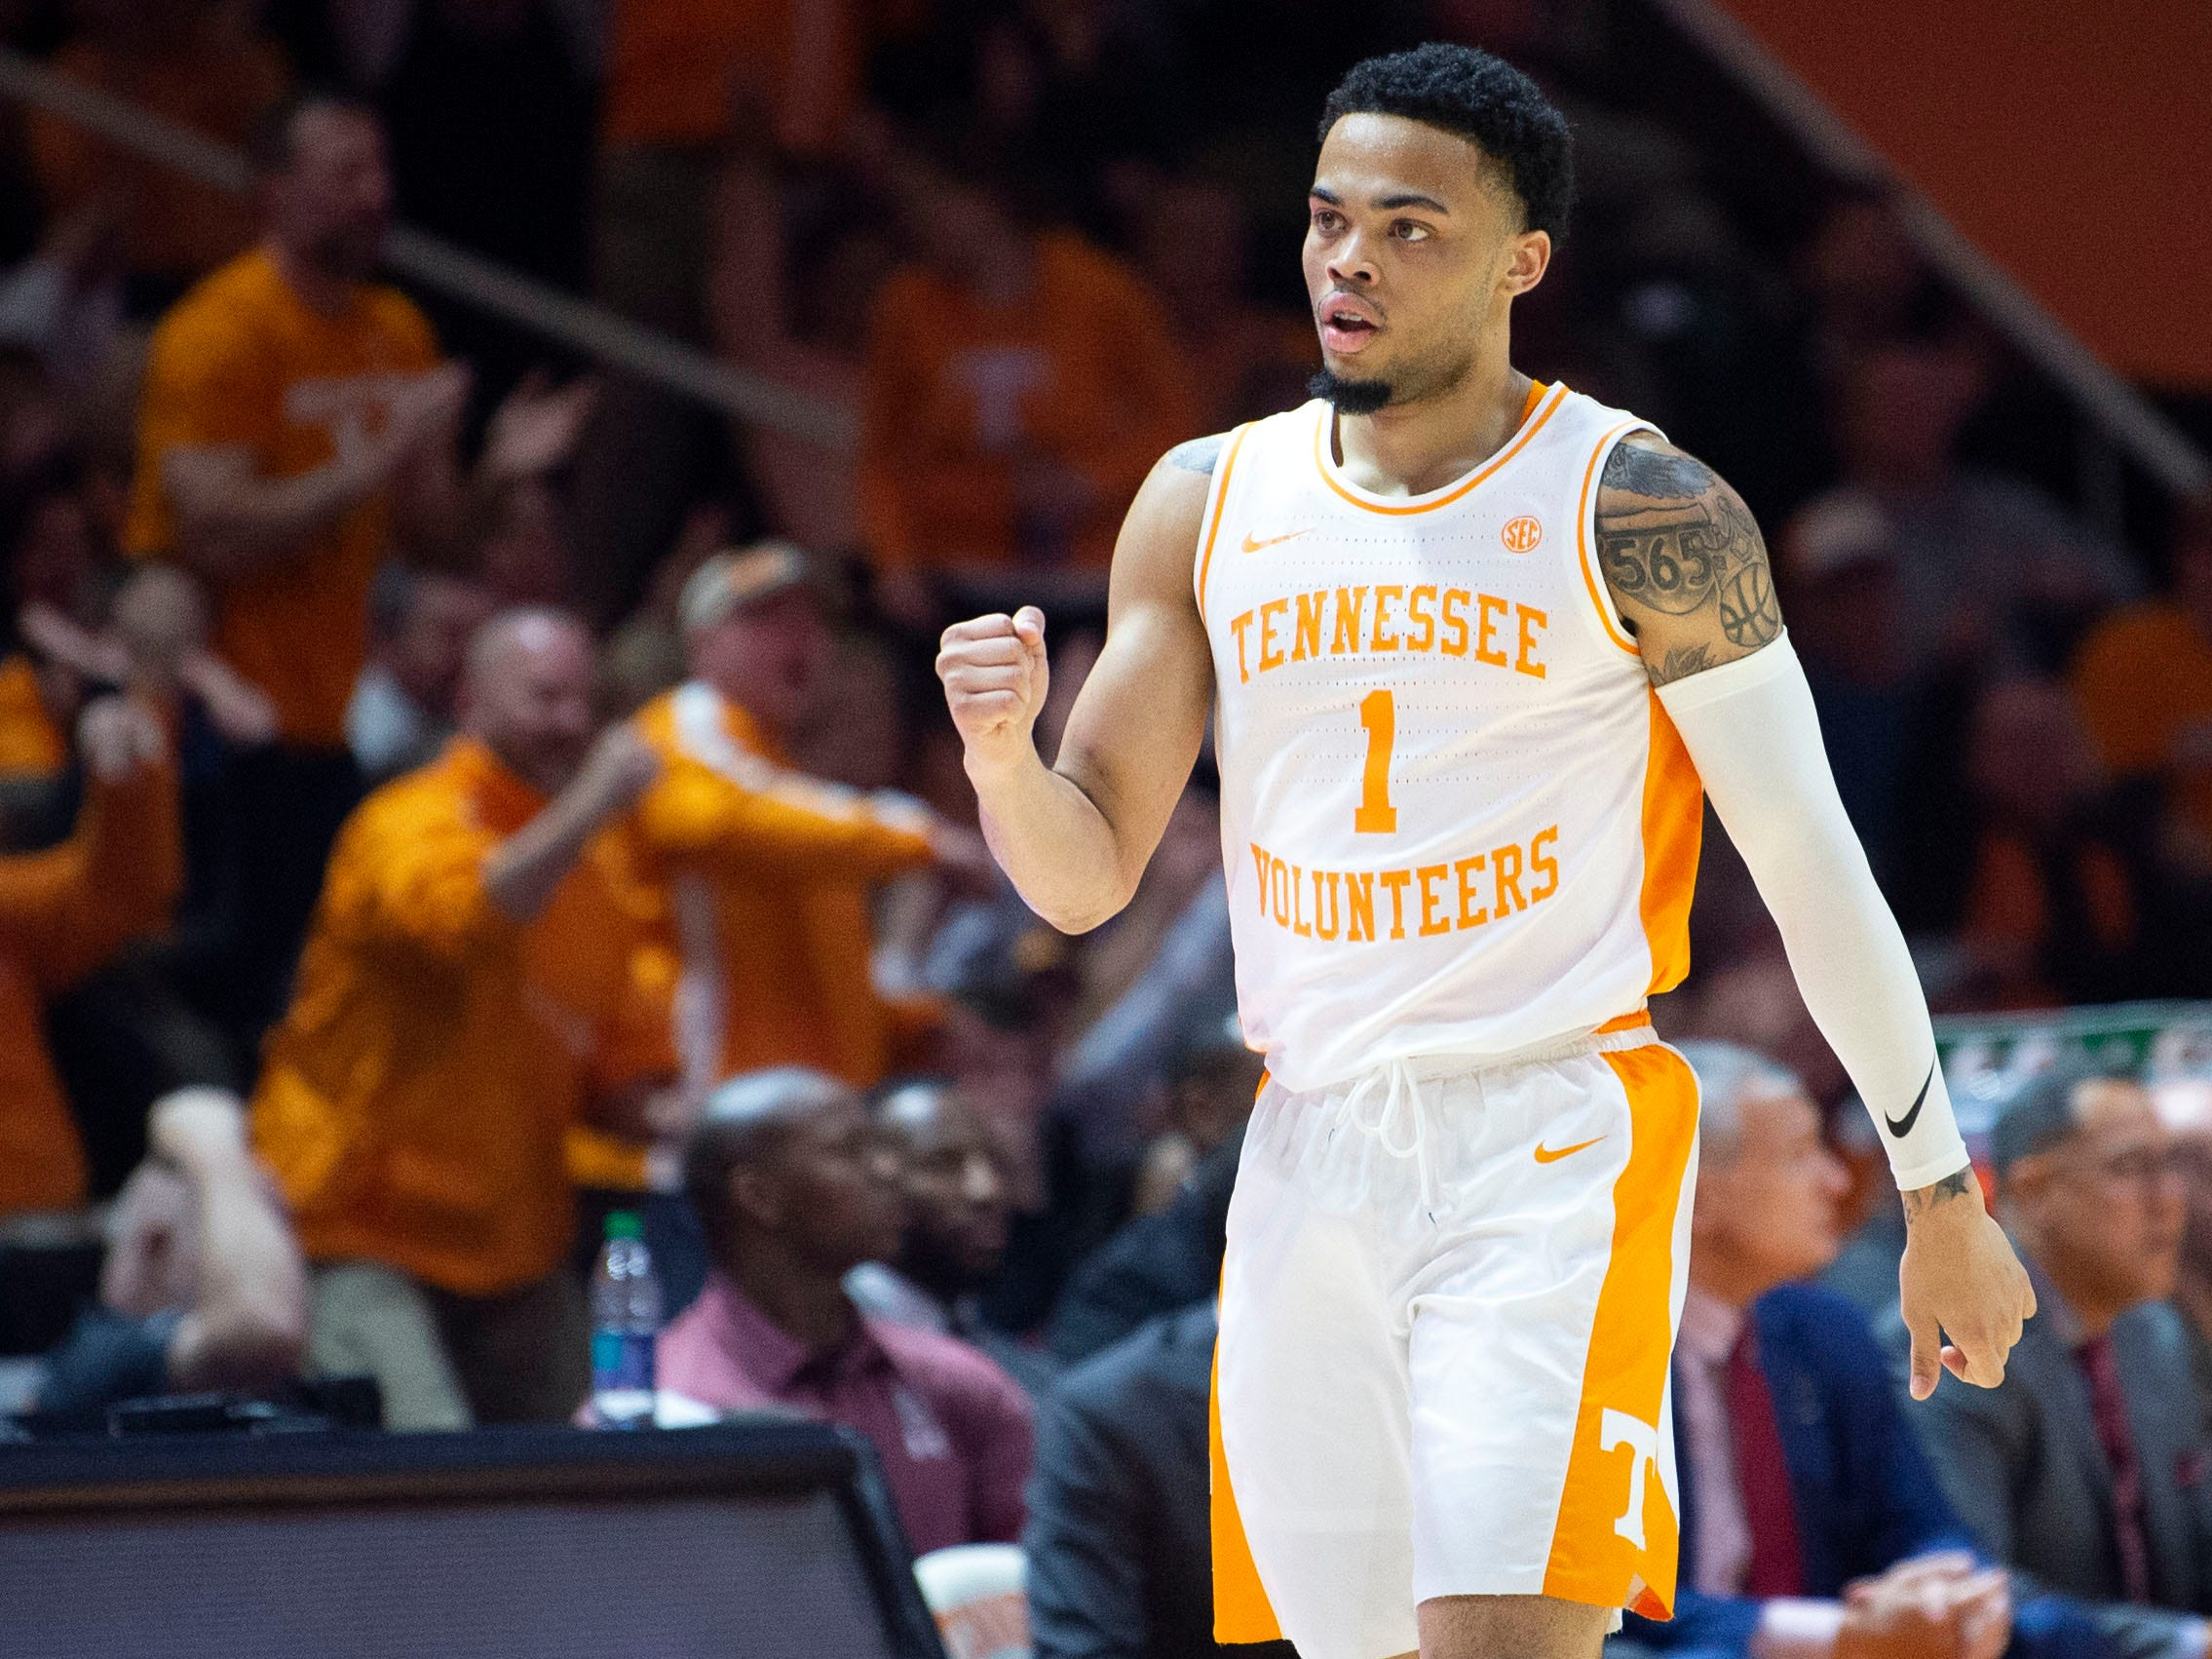 Tennessee's Lamonte Turner (1) celebrates a bit during the game against South Carolina on Wednesday, February 13, 2019.